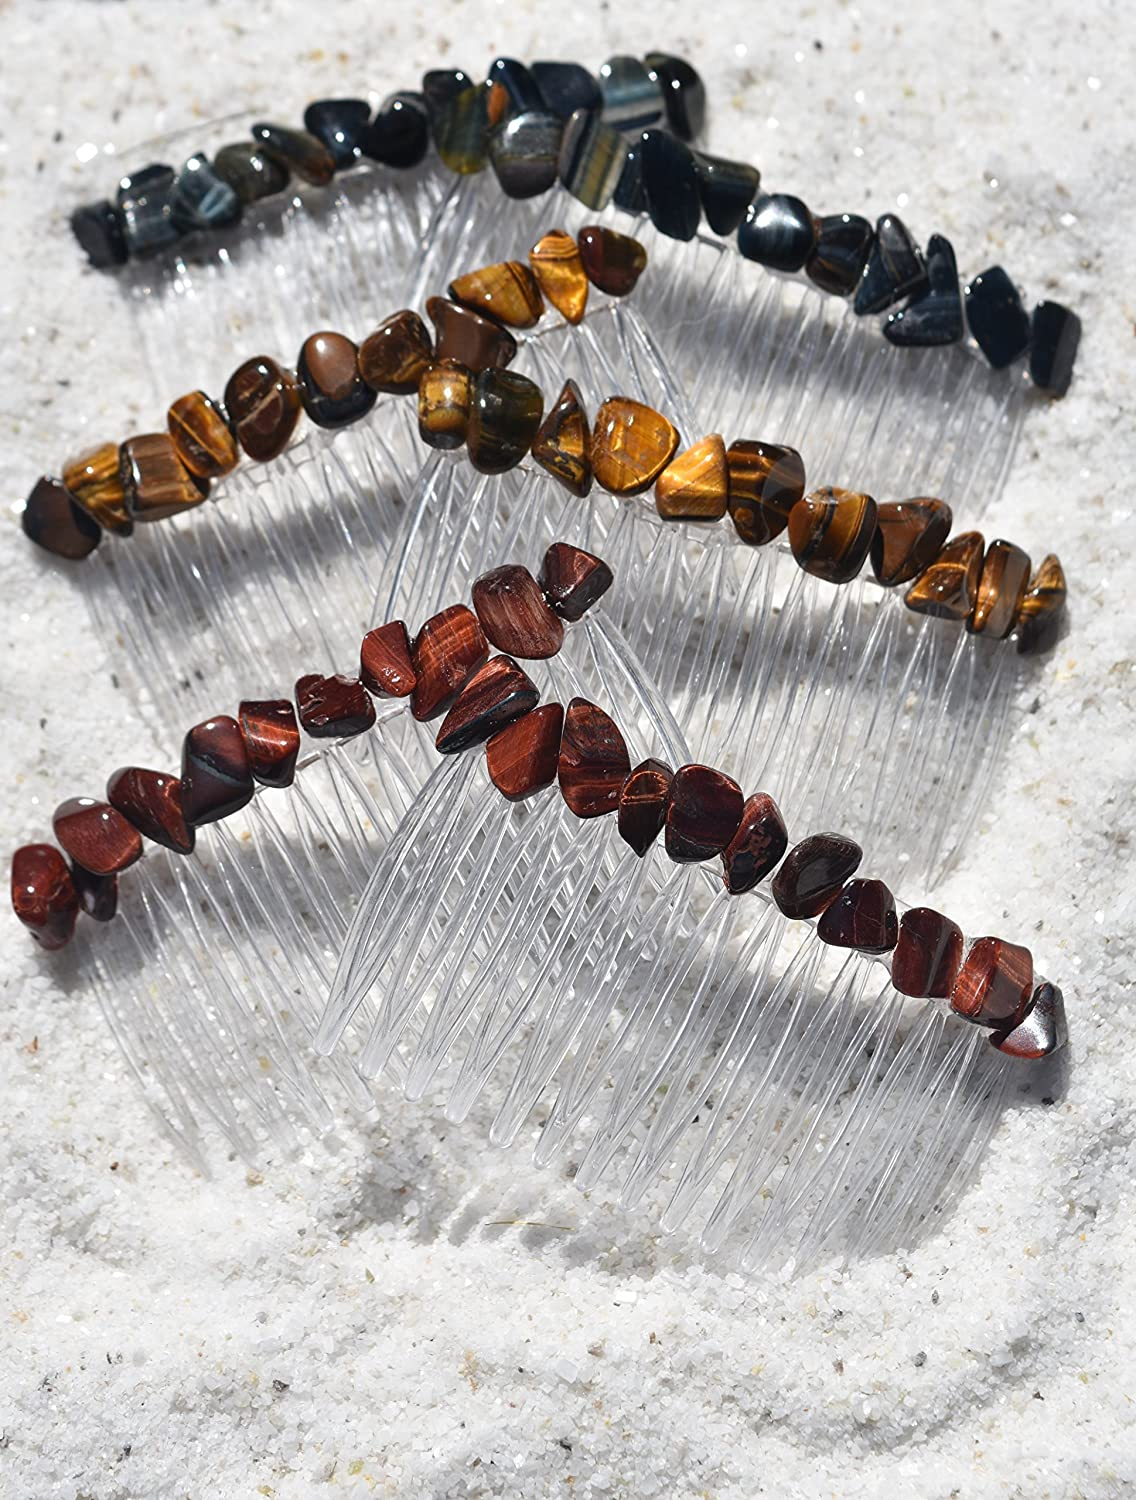 Tiger's Eye Stone Hair Combs 3 Sets of 2 for Total of 6 Includes: Red Tiger's Eye, Gold Tiger's Eye and Blue Tiger's Eye